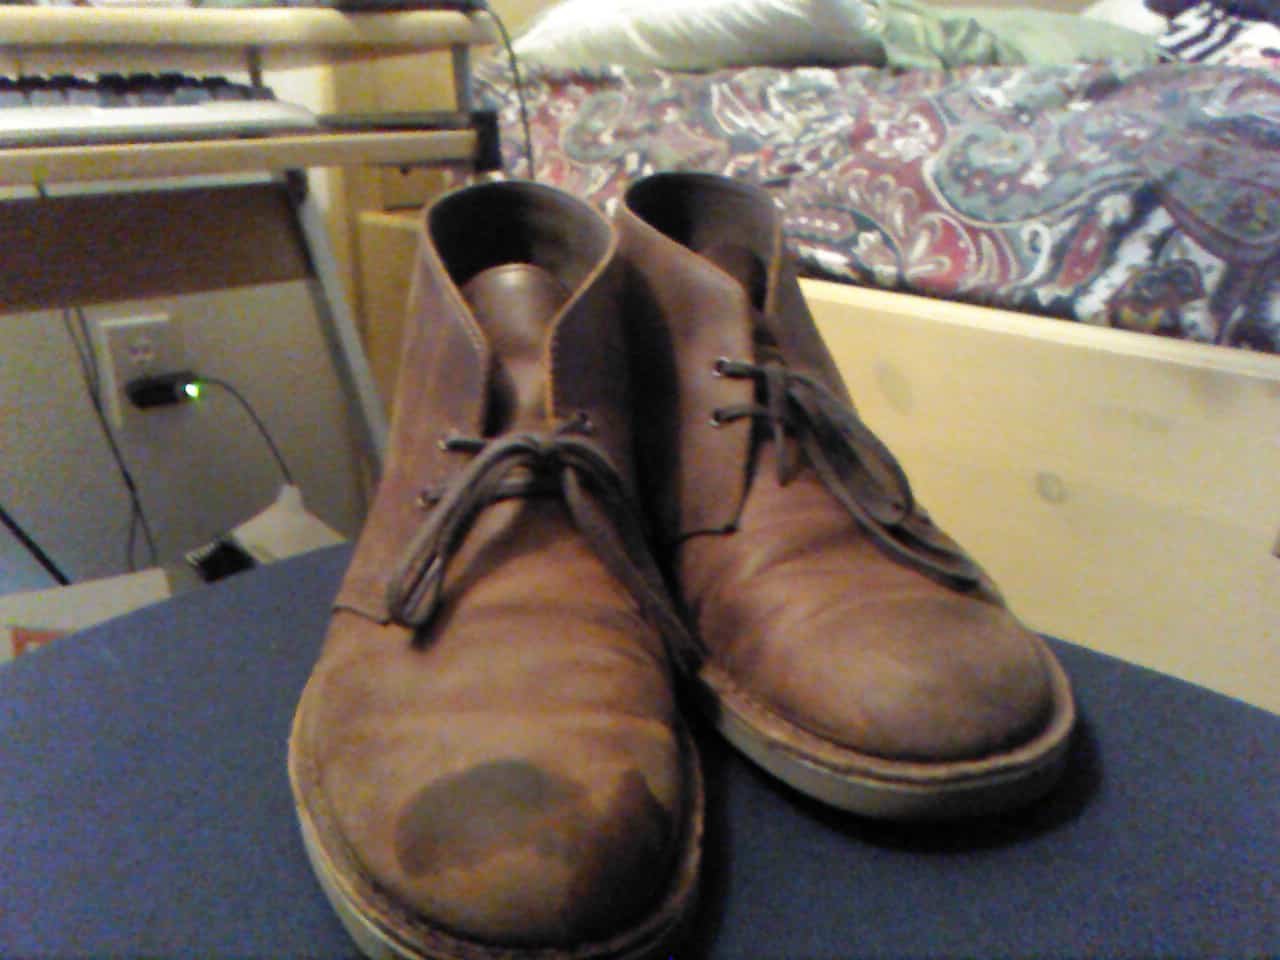 Boots are Stained with Grease or Oil